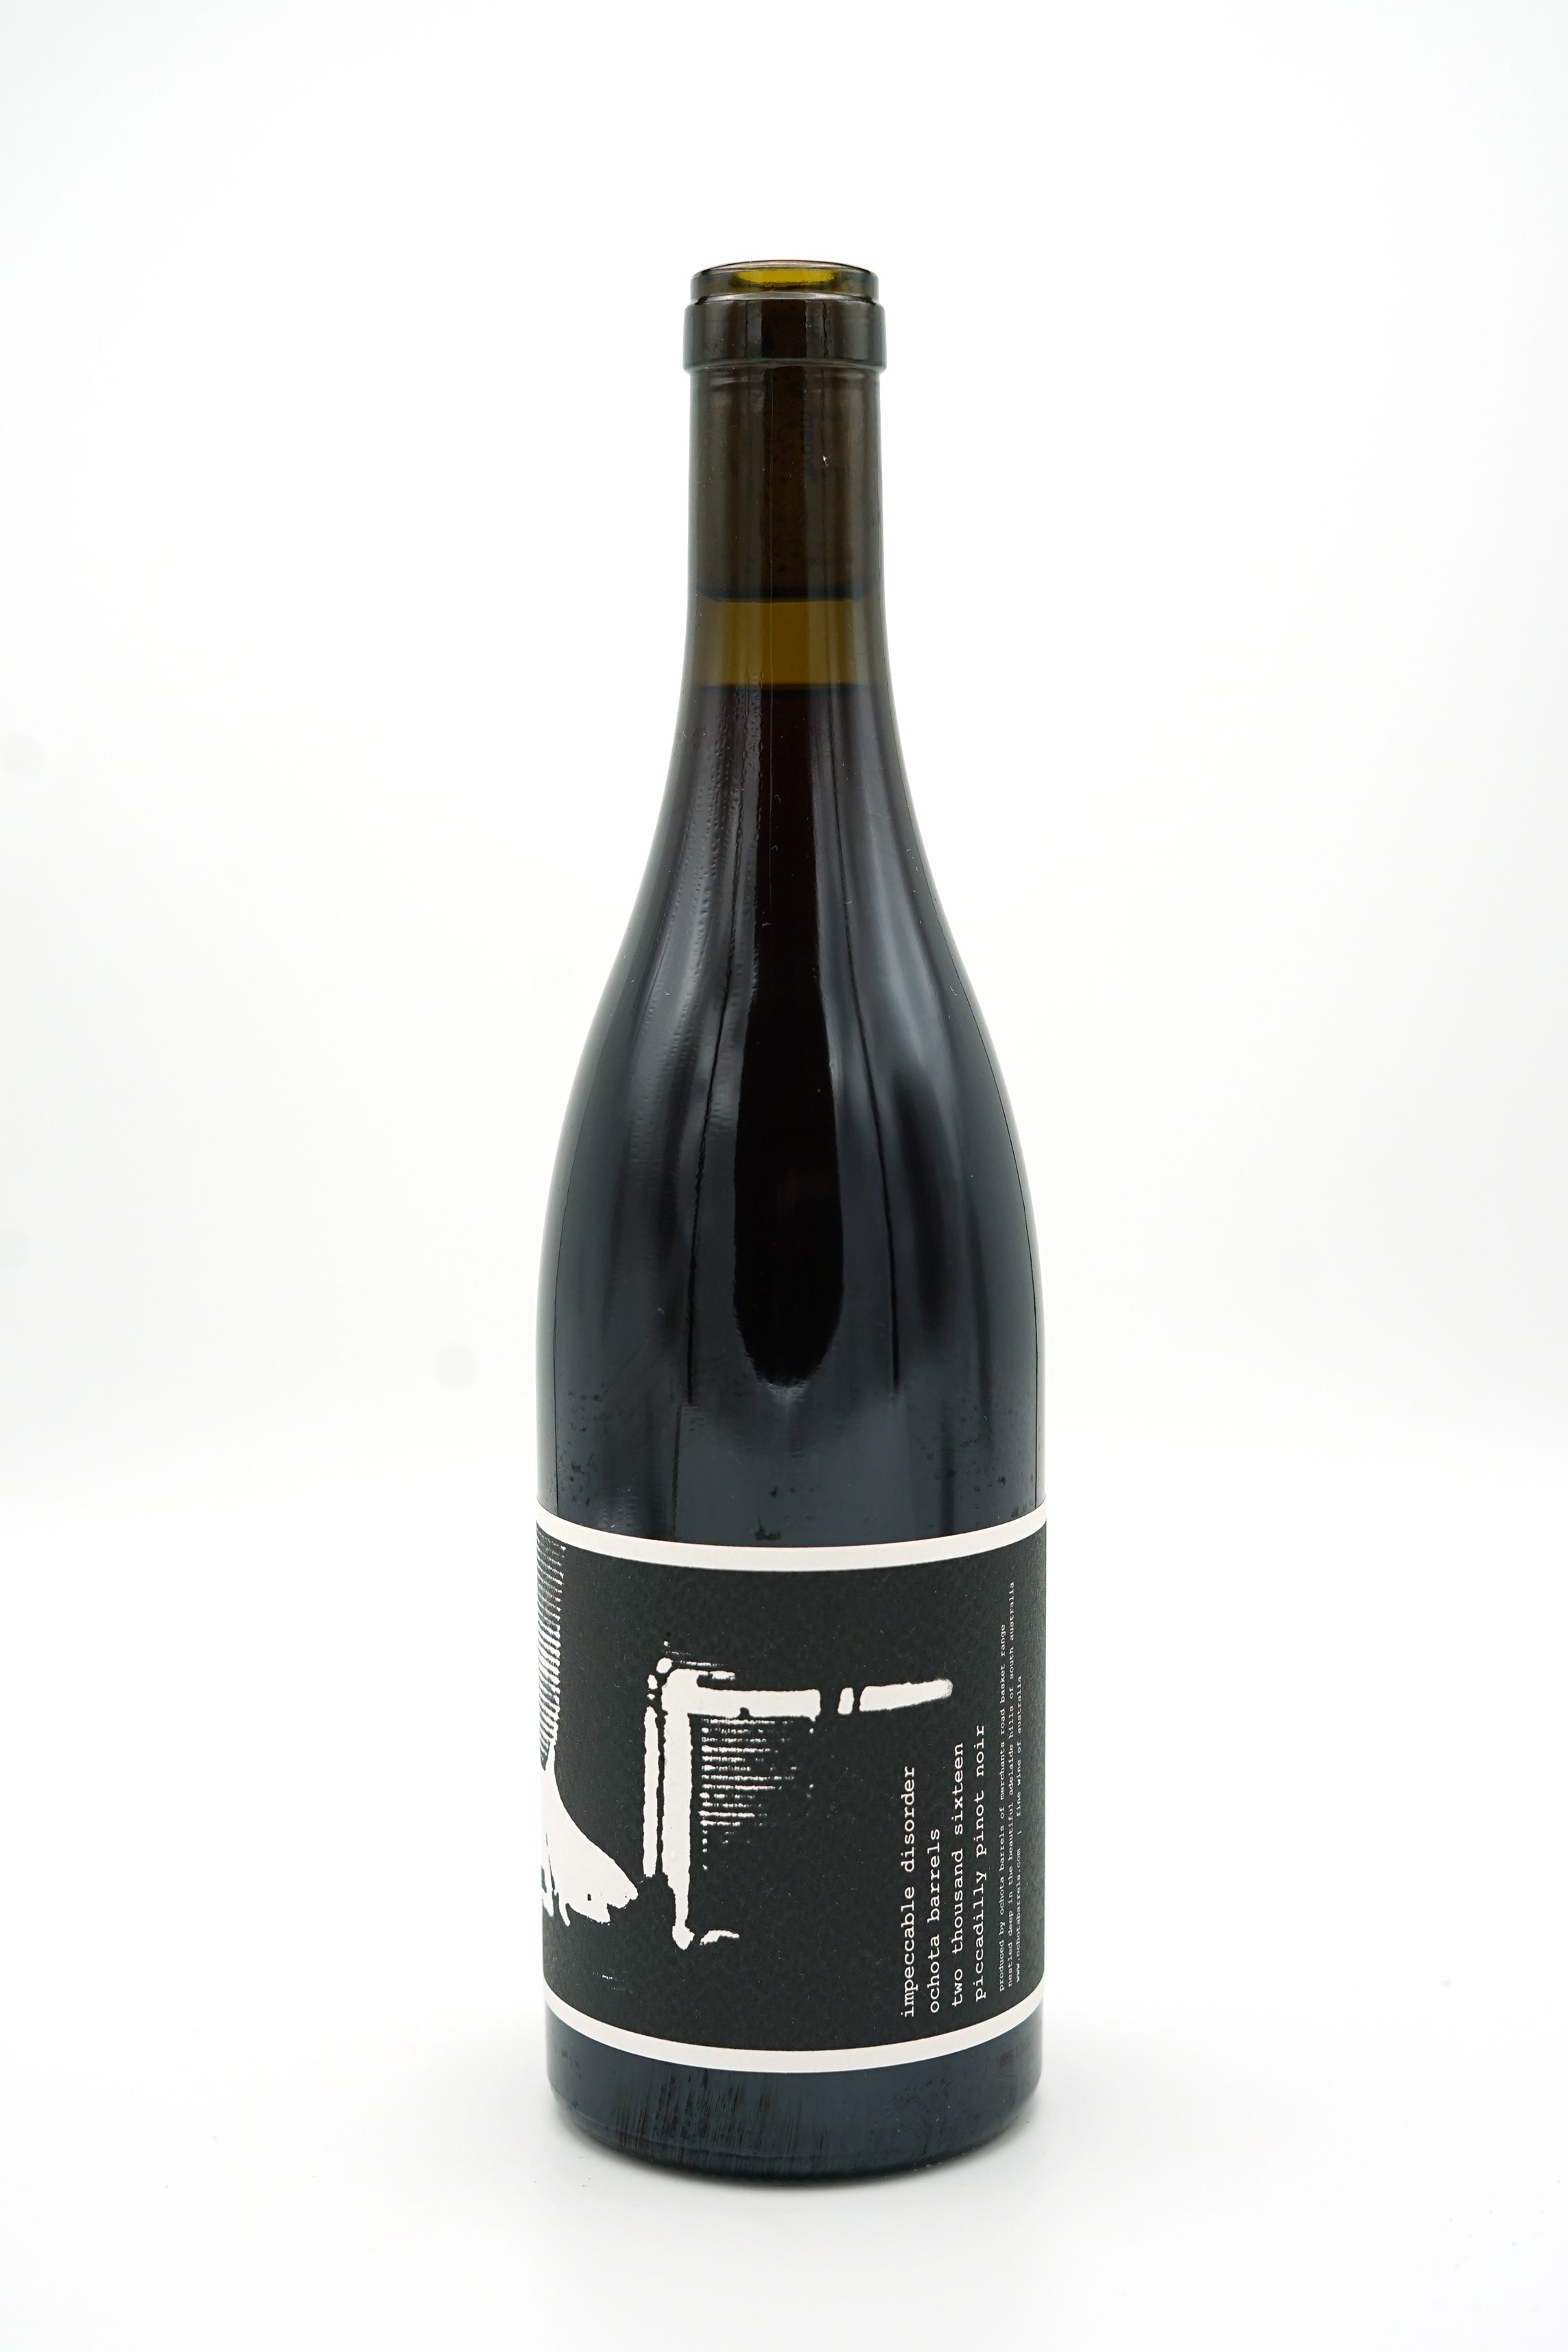 Impeccable disorder Pinot Noir 2016 - Ochota Barrels Winery